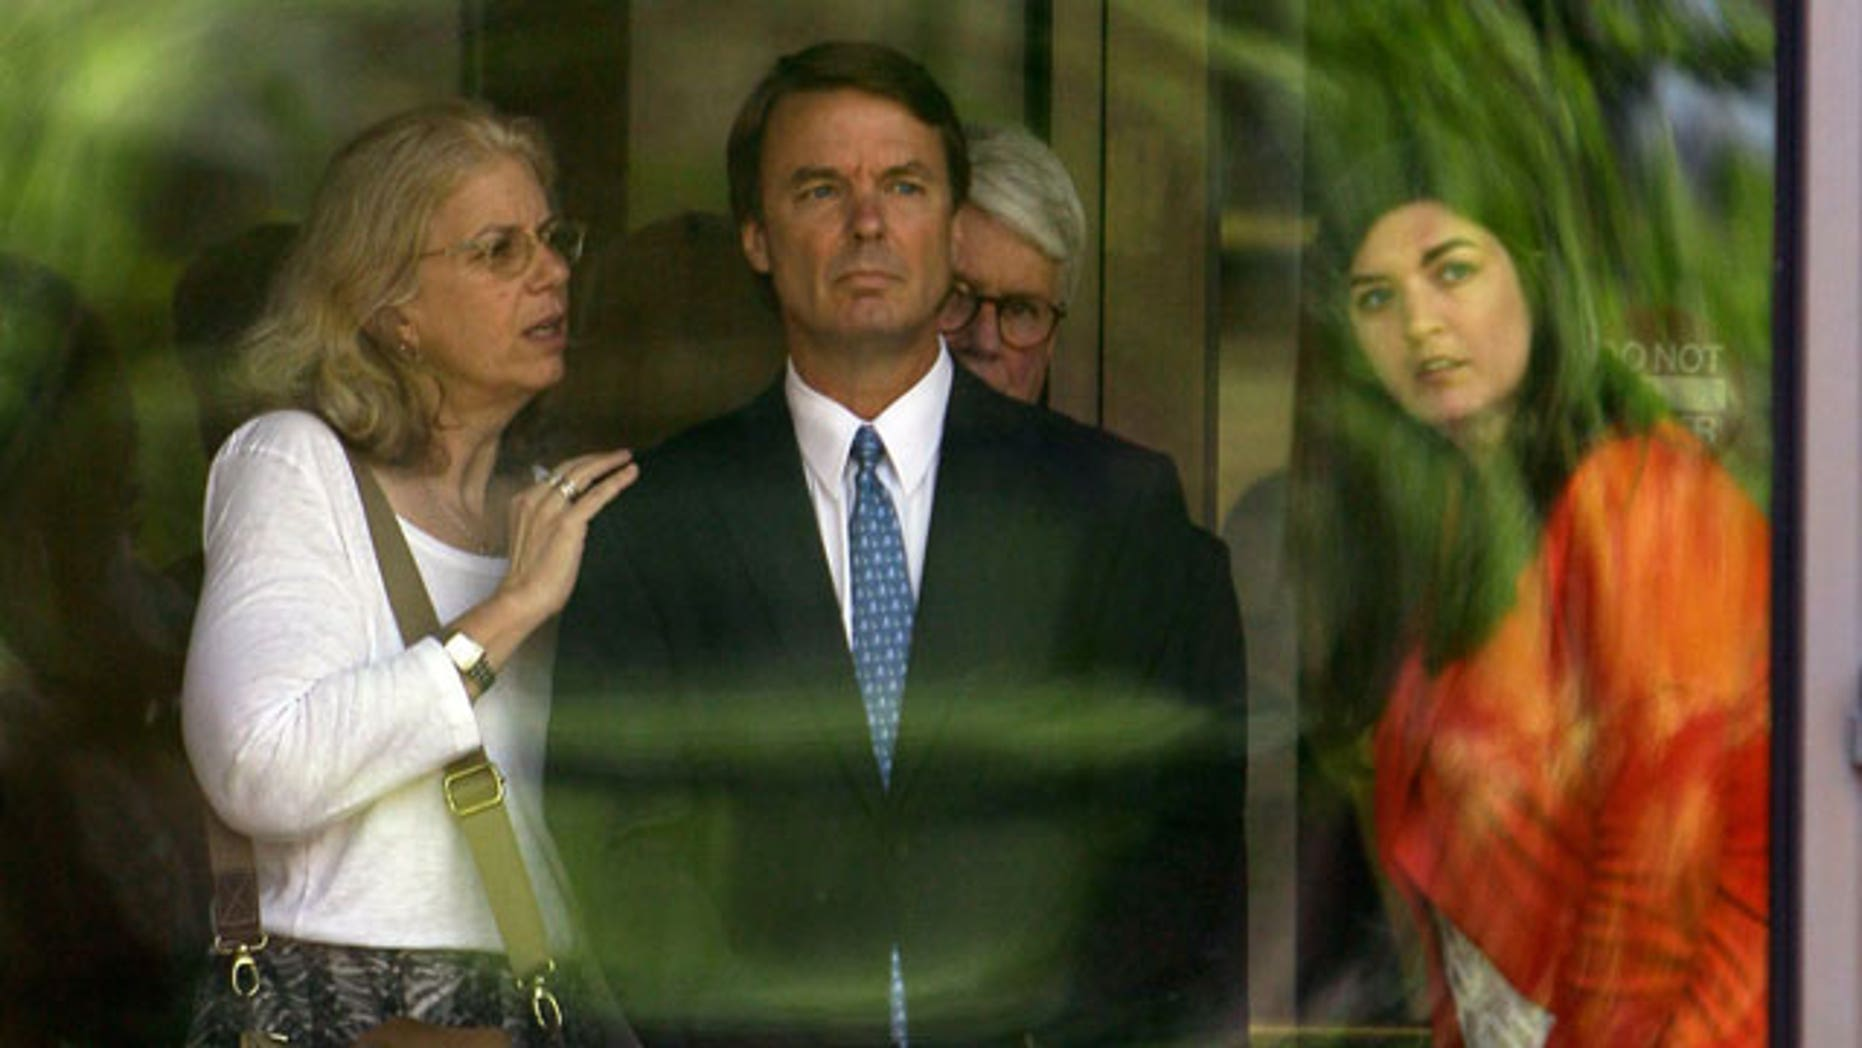 Former presidential candidate John Edwards, center, is seen with his daughter Cate, right, as they peer out of the federal building following a court appearance in Winston-Salem, N.C., Friday, June 3, 2011. (AP)